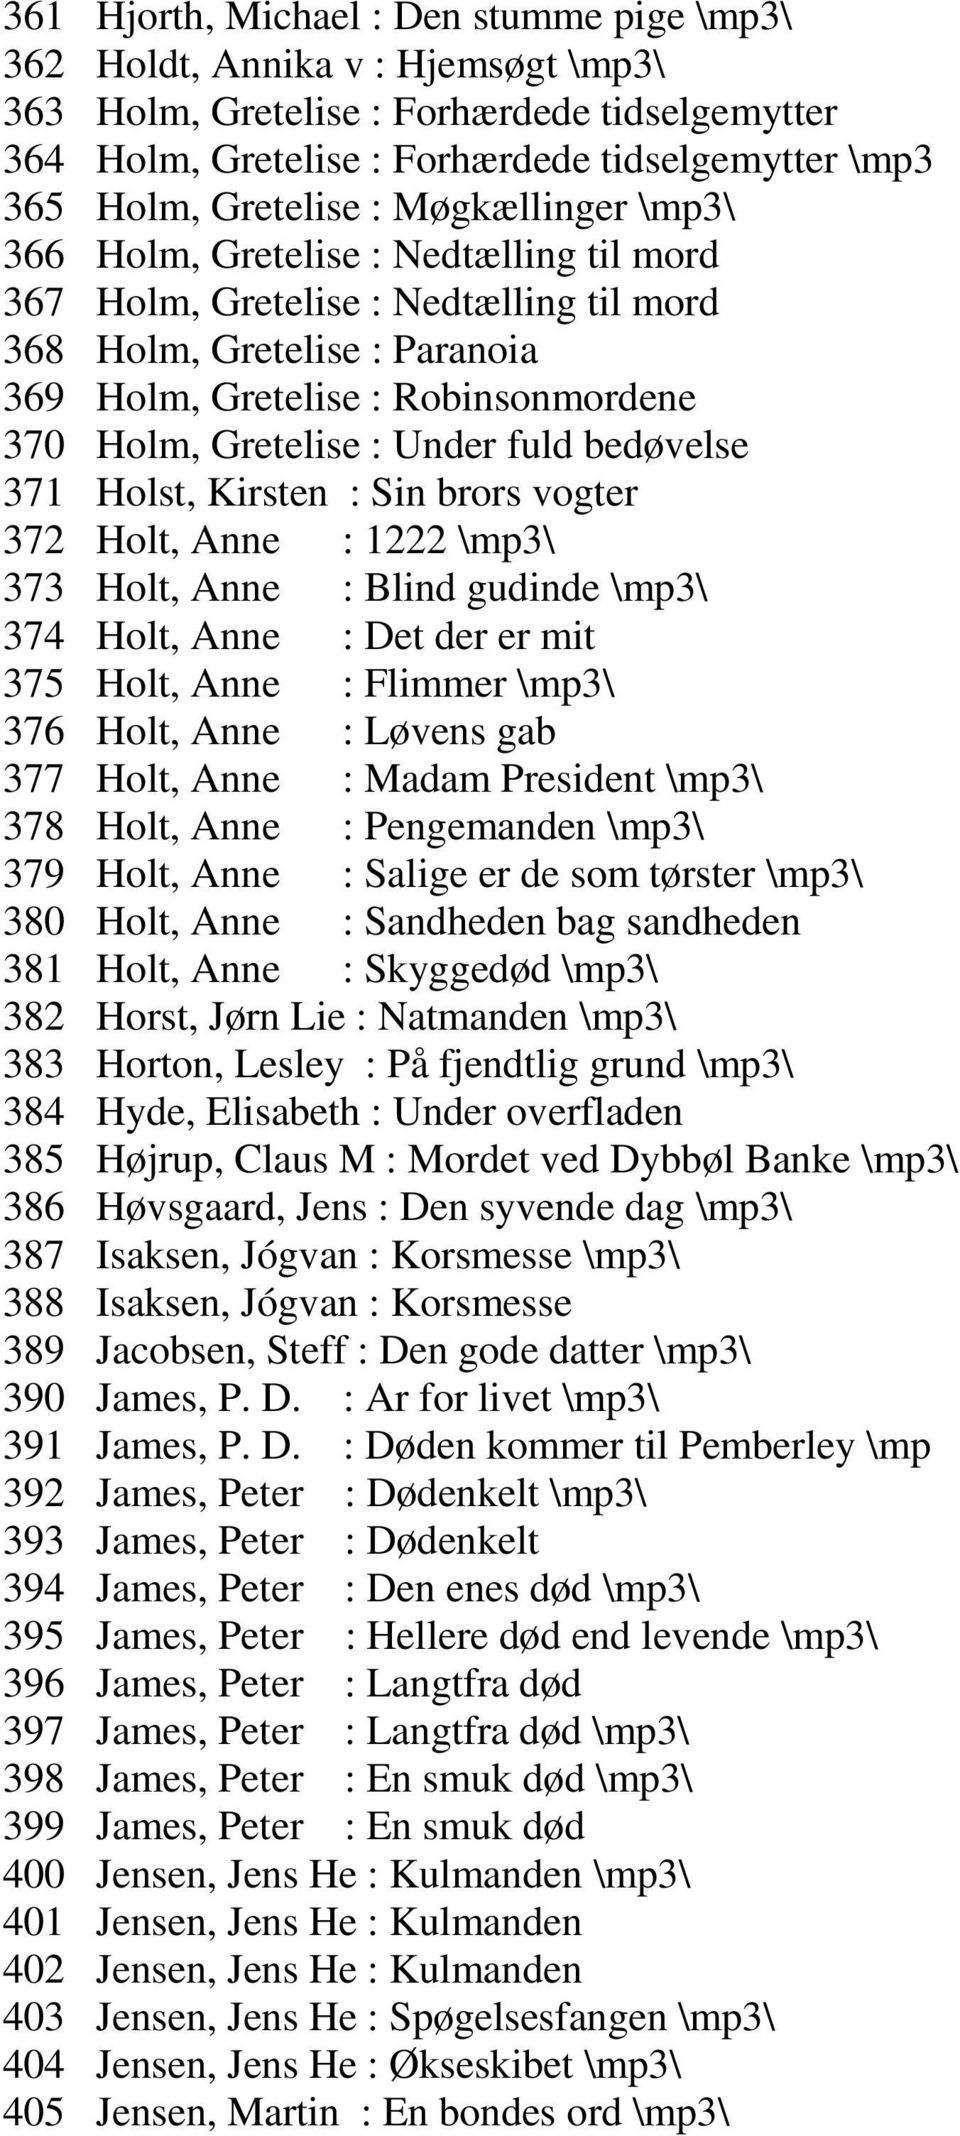 Gretelise : Under fuld bedøvelse 371 Holst, Kirsten : Sin brors vogter 372 Holt, Anne : 1222 \mp3\ 373 Holt, Anne : Blind gudinde \mp3\ 374 Holt, Anne : Det der er mit 375 Holt, Anne : Flimmer \mp3\